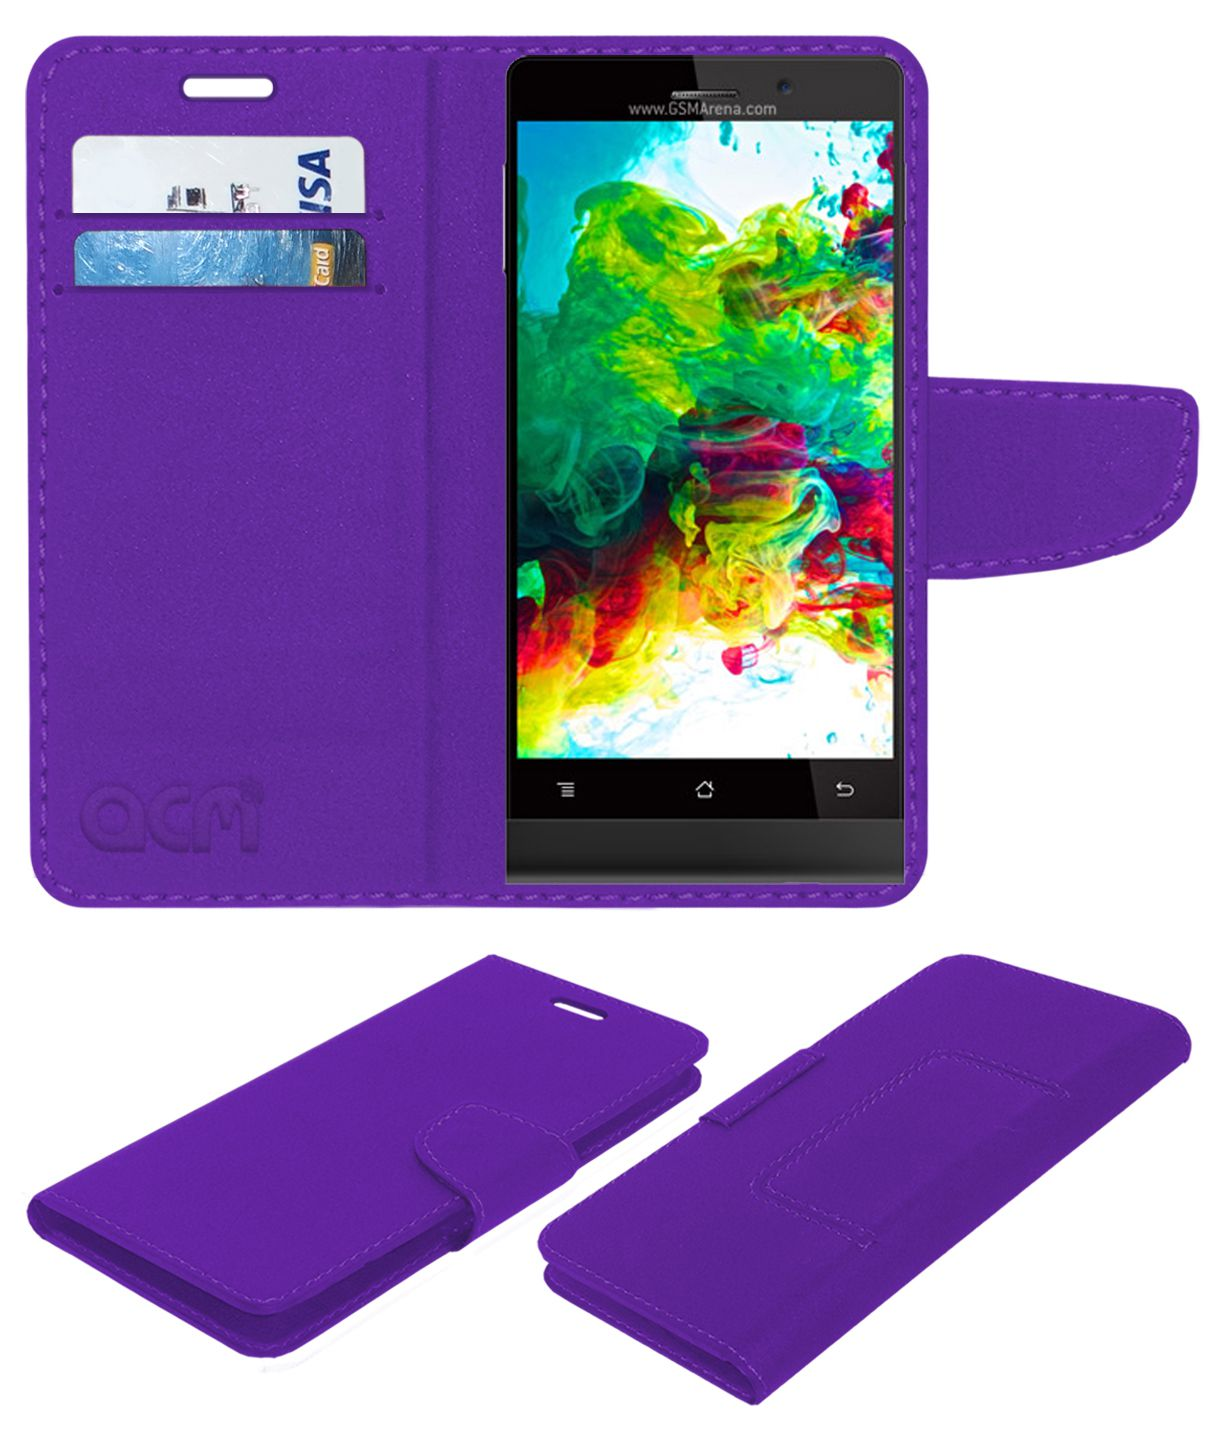 Karbonn Titanium Octane Plus Flip Cover by ACM - Purple